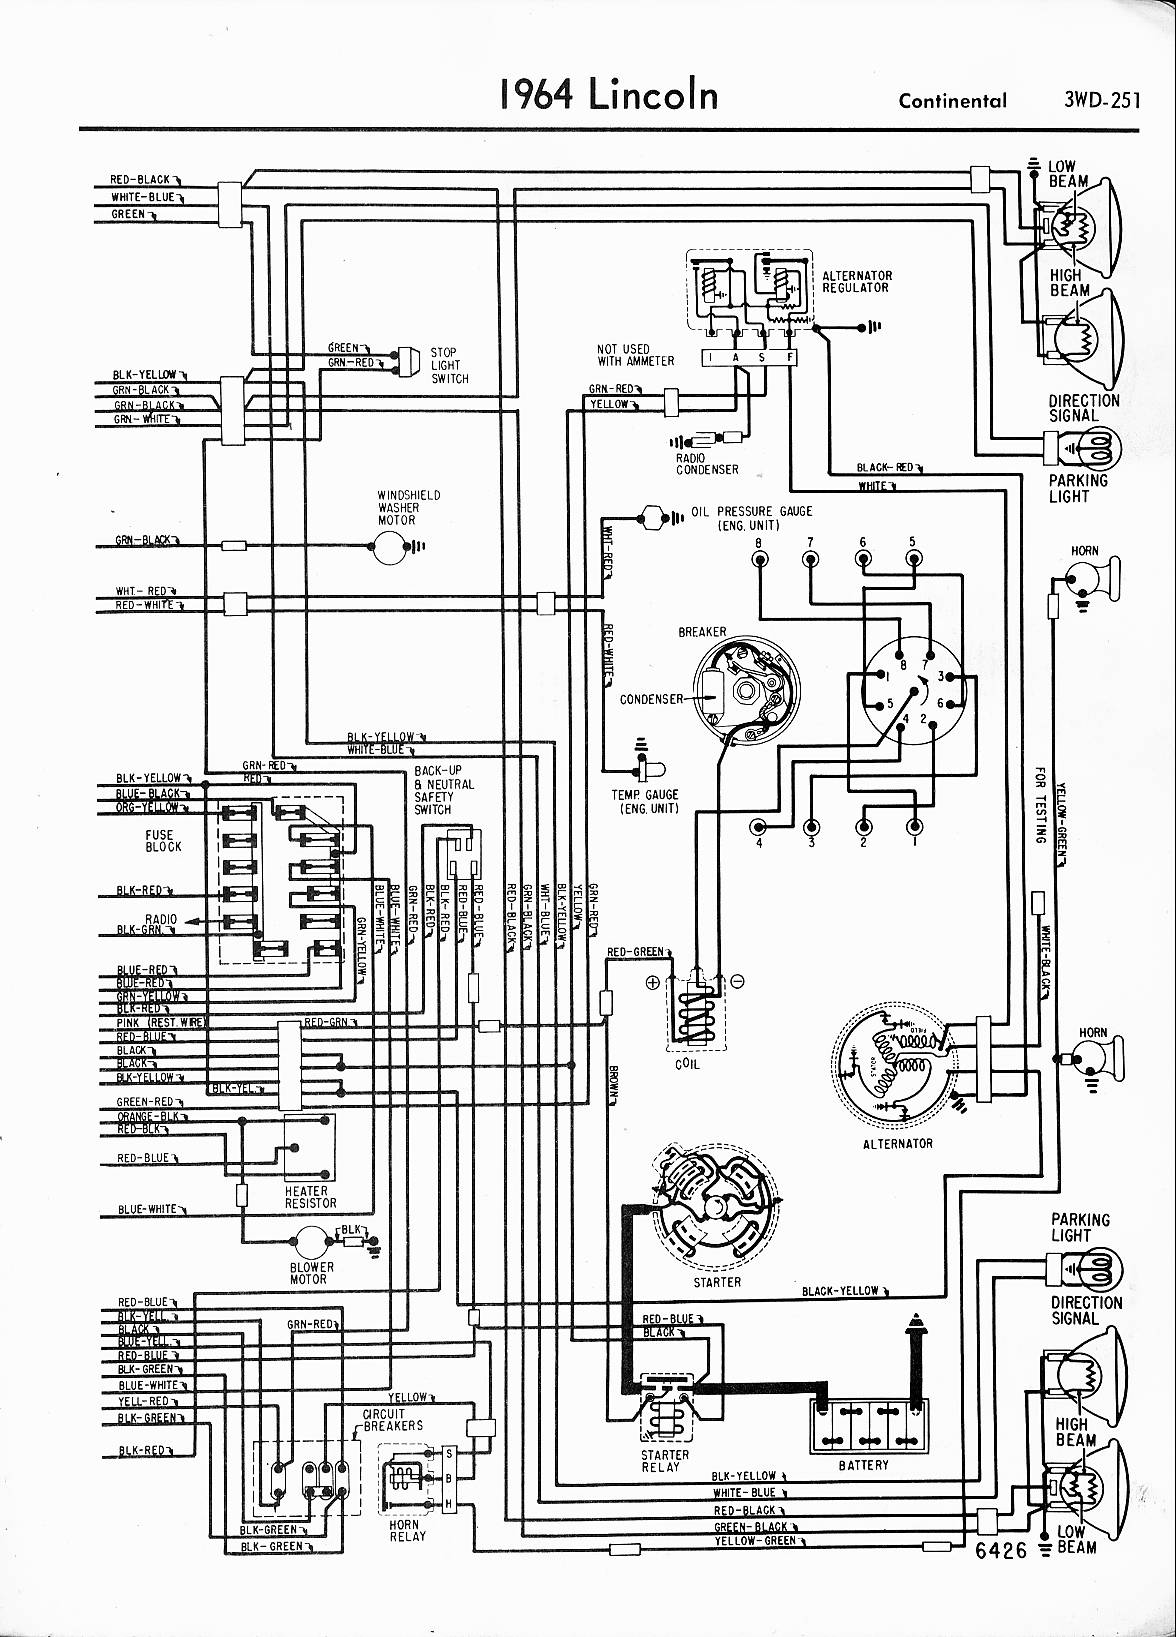 1995 Ford Thunderbird Fuse Diagram Wiring Library 1992 In Dash Box Lincoln Diagrams 1957